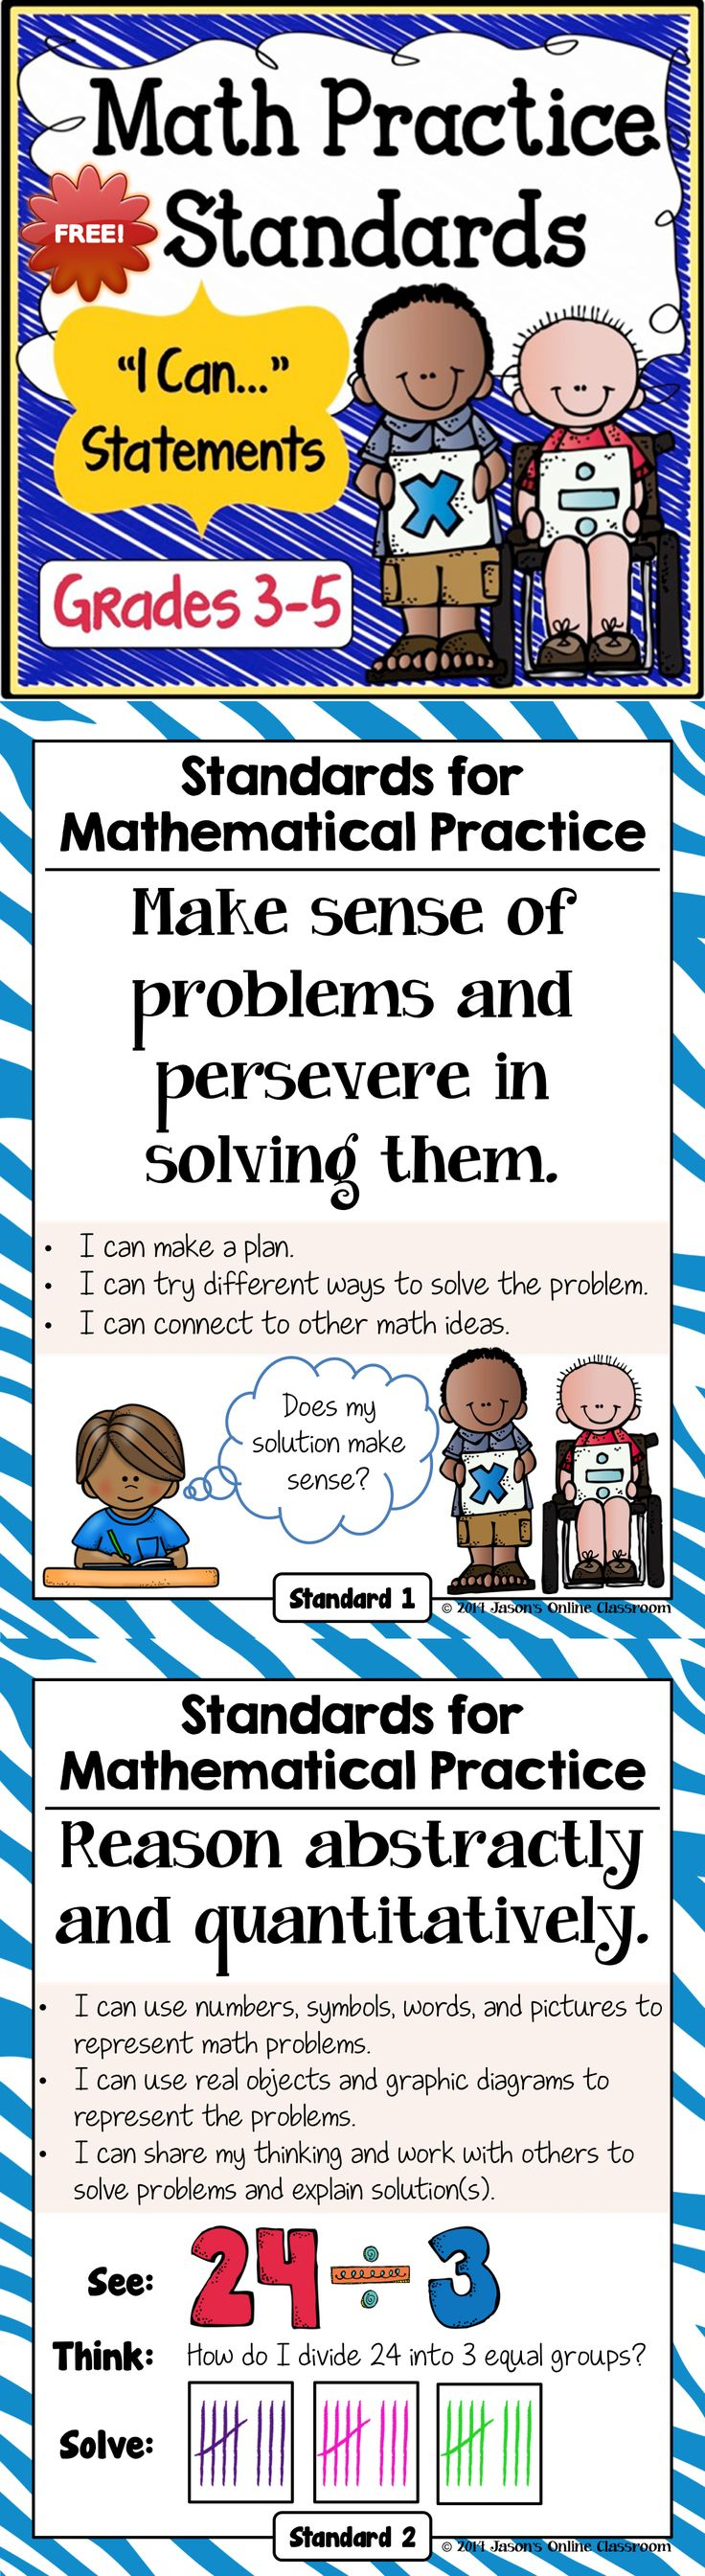 FREEBIE - Math Practice Standards for Grades 3-5